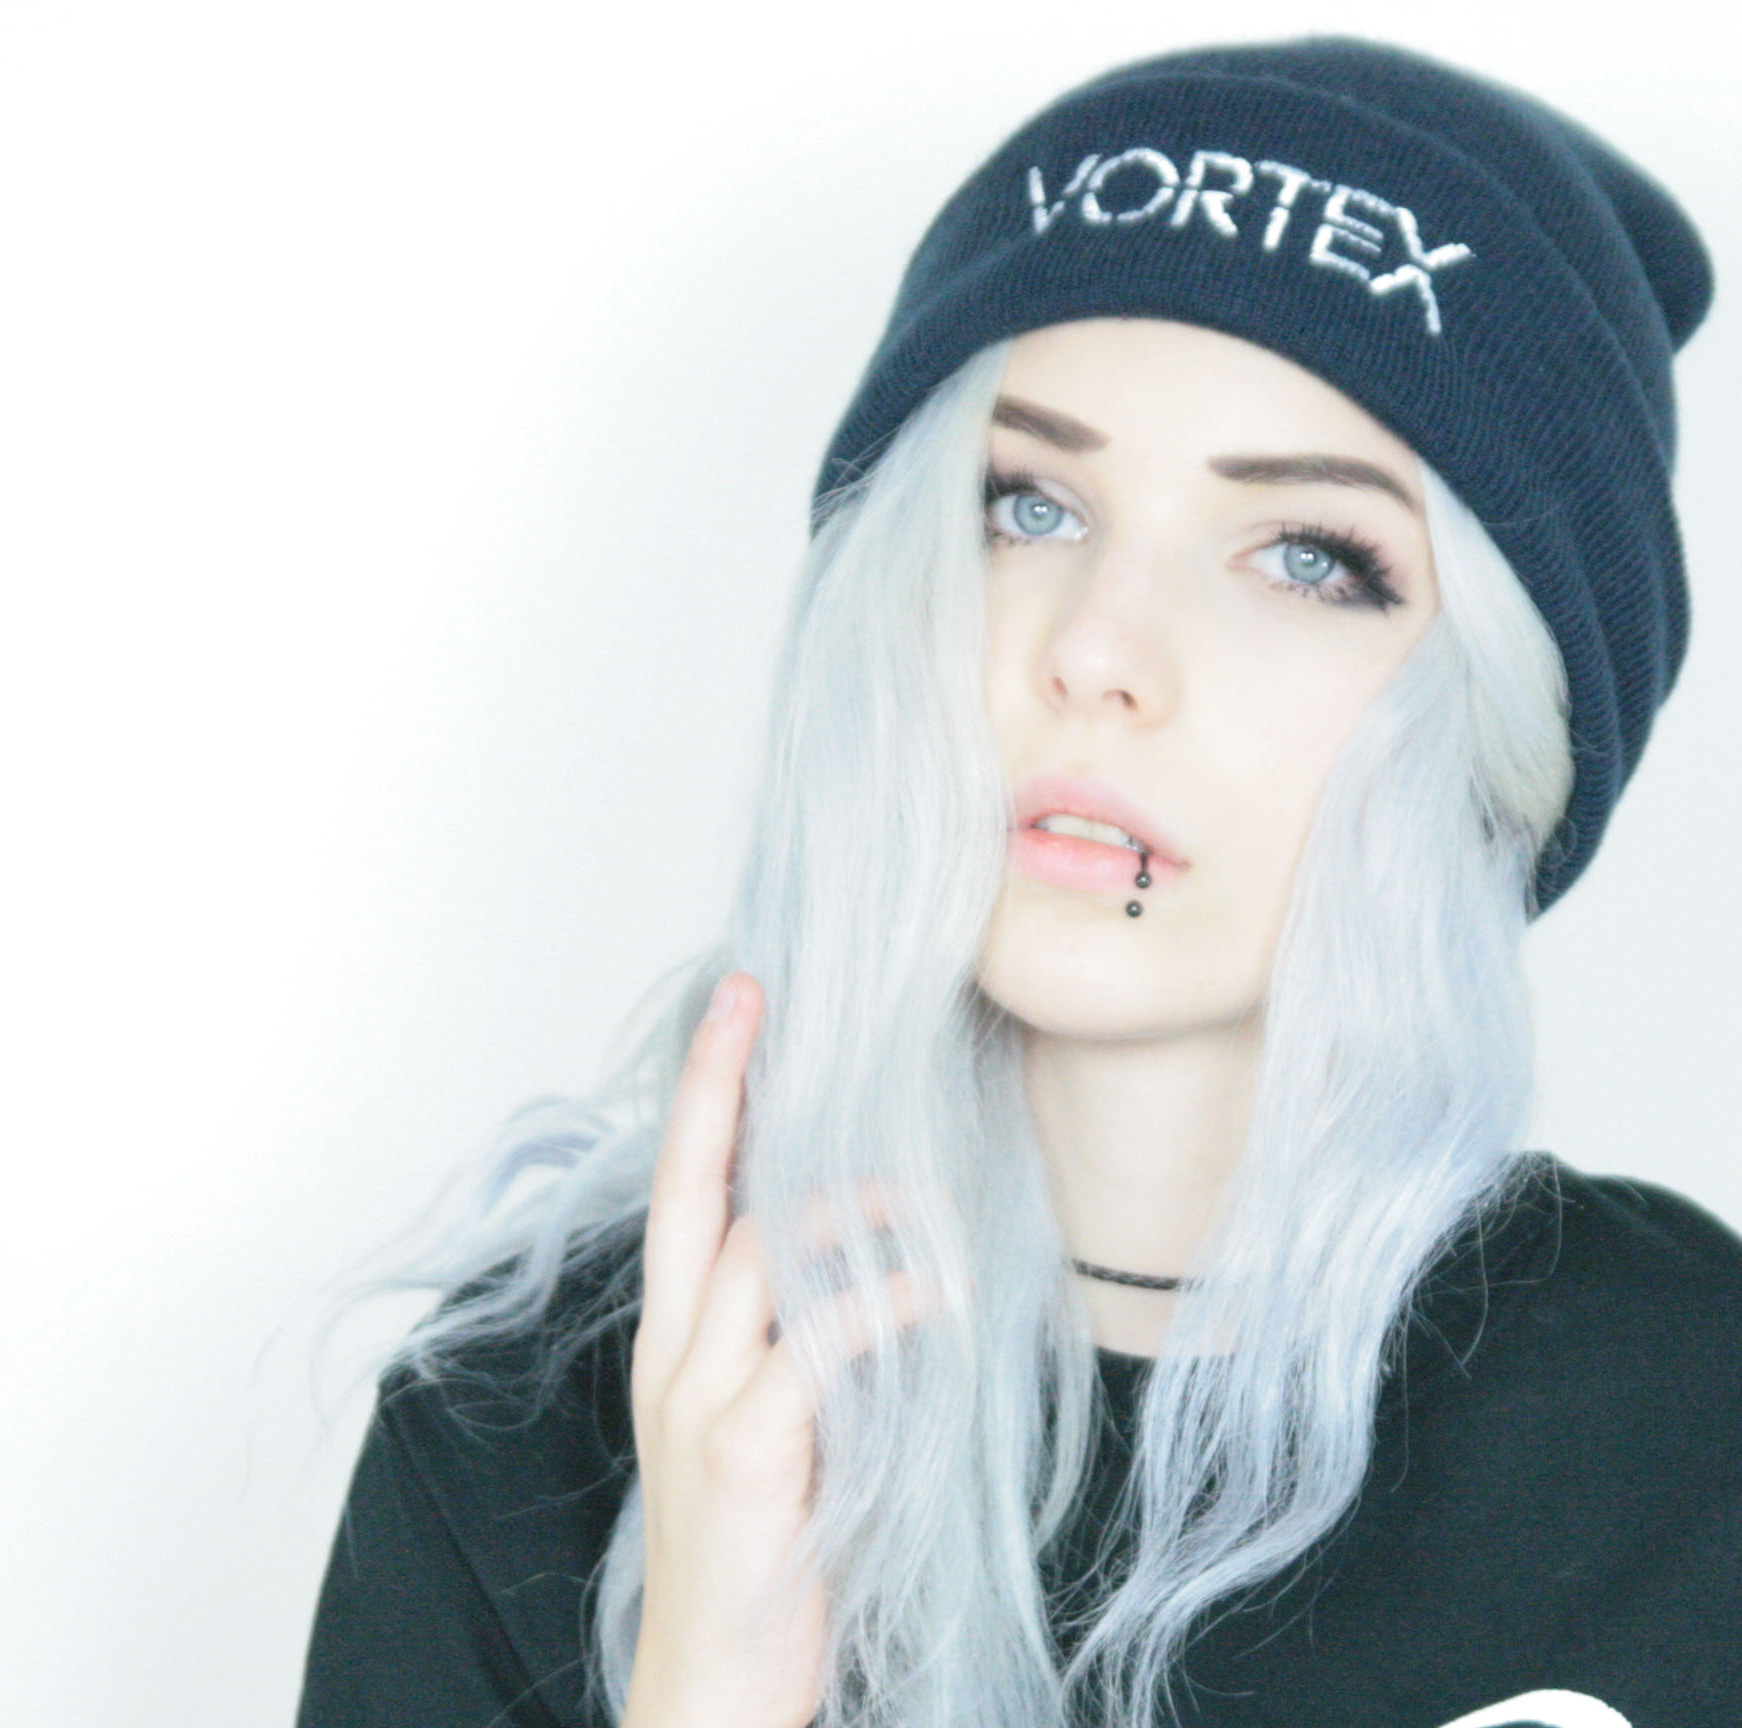 684858643d1 Pictures of Cute Tumblr Girls With Beanies - kidskunst.info